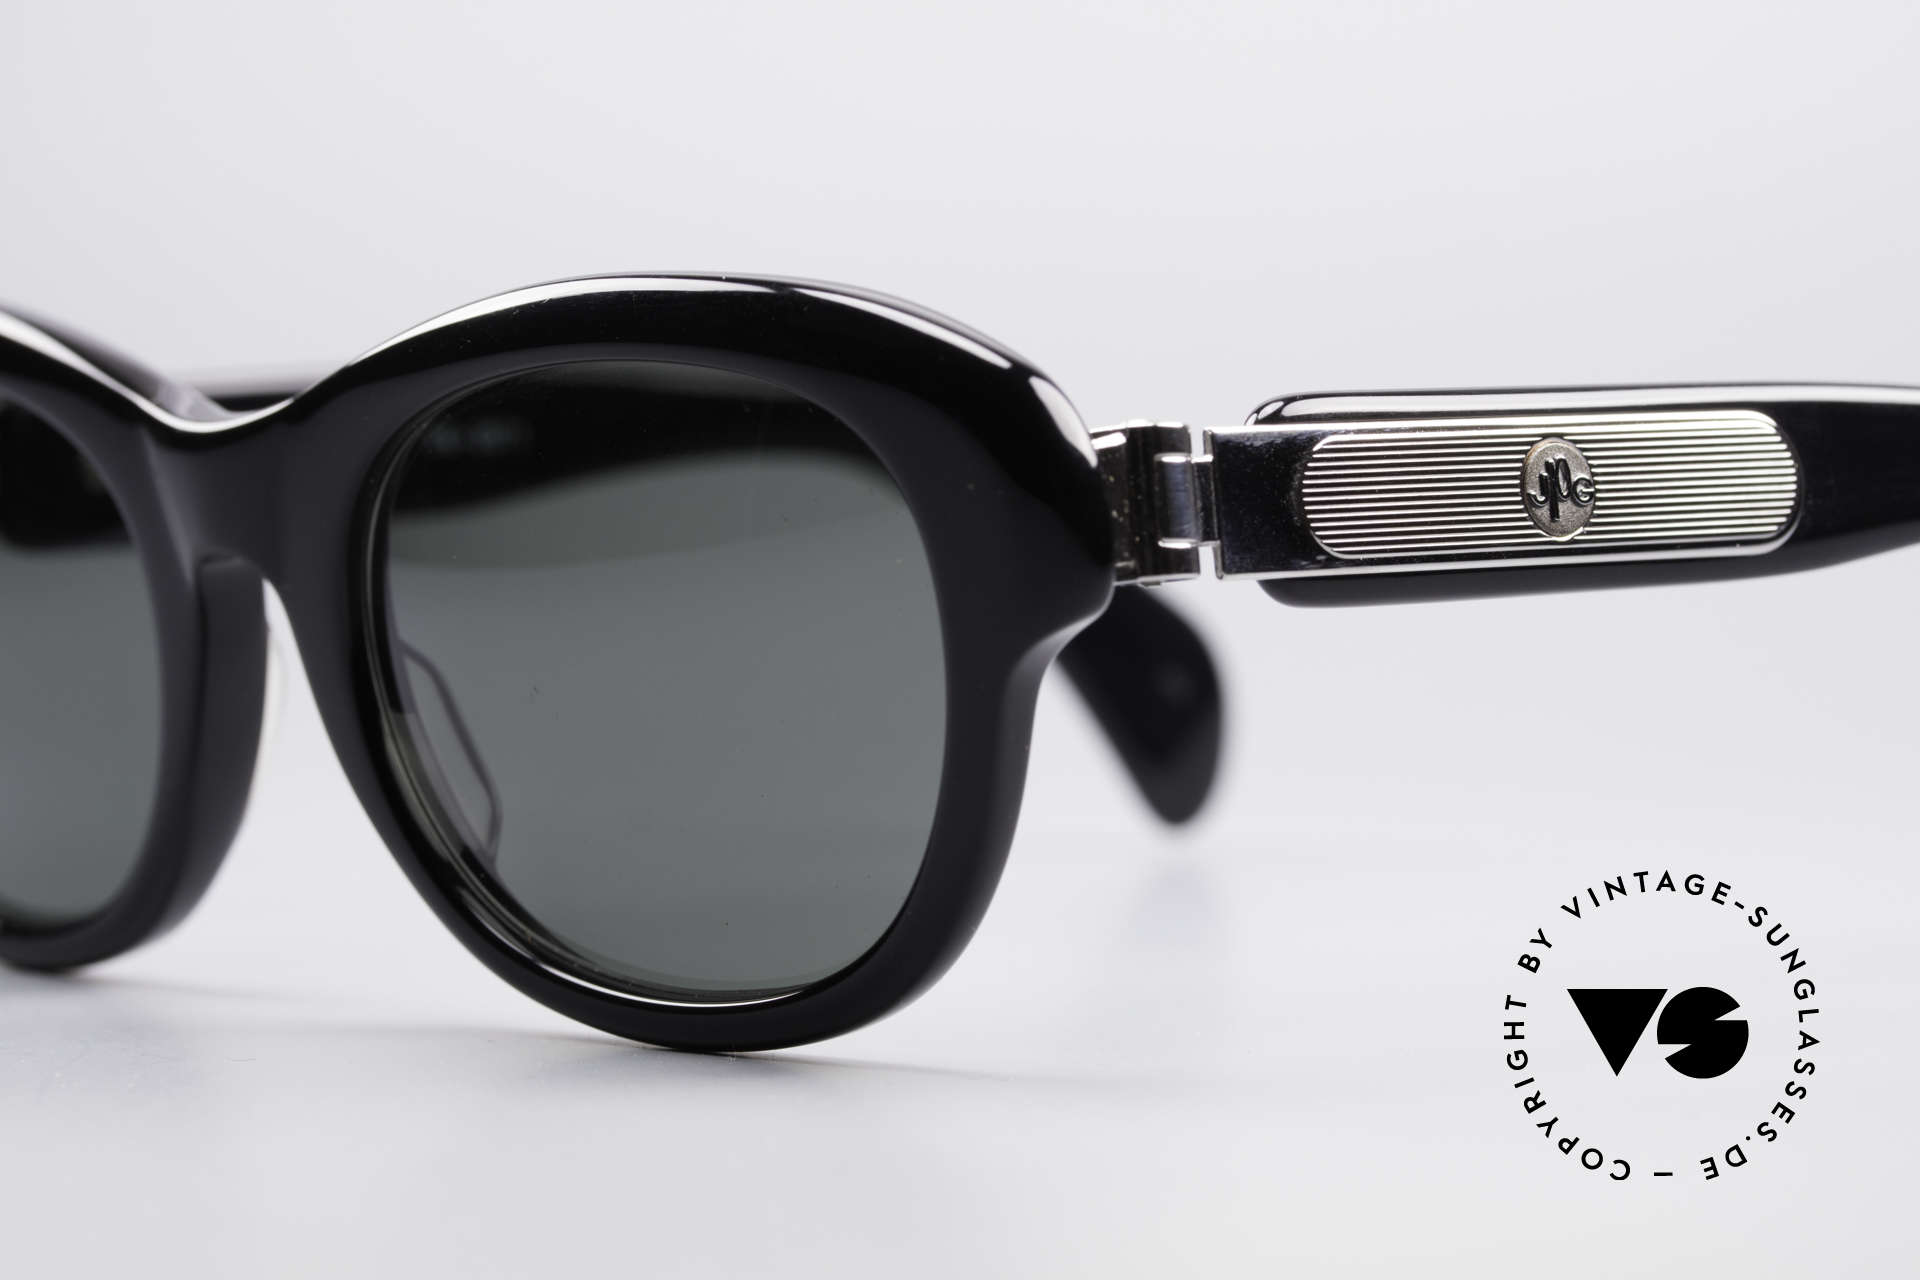 Jean Paul Gaultier 56-2071 No Retro True Vintage Specs, monolithic (built to last) & with 100% UV protection, Made for Women